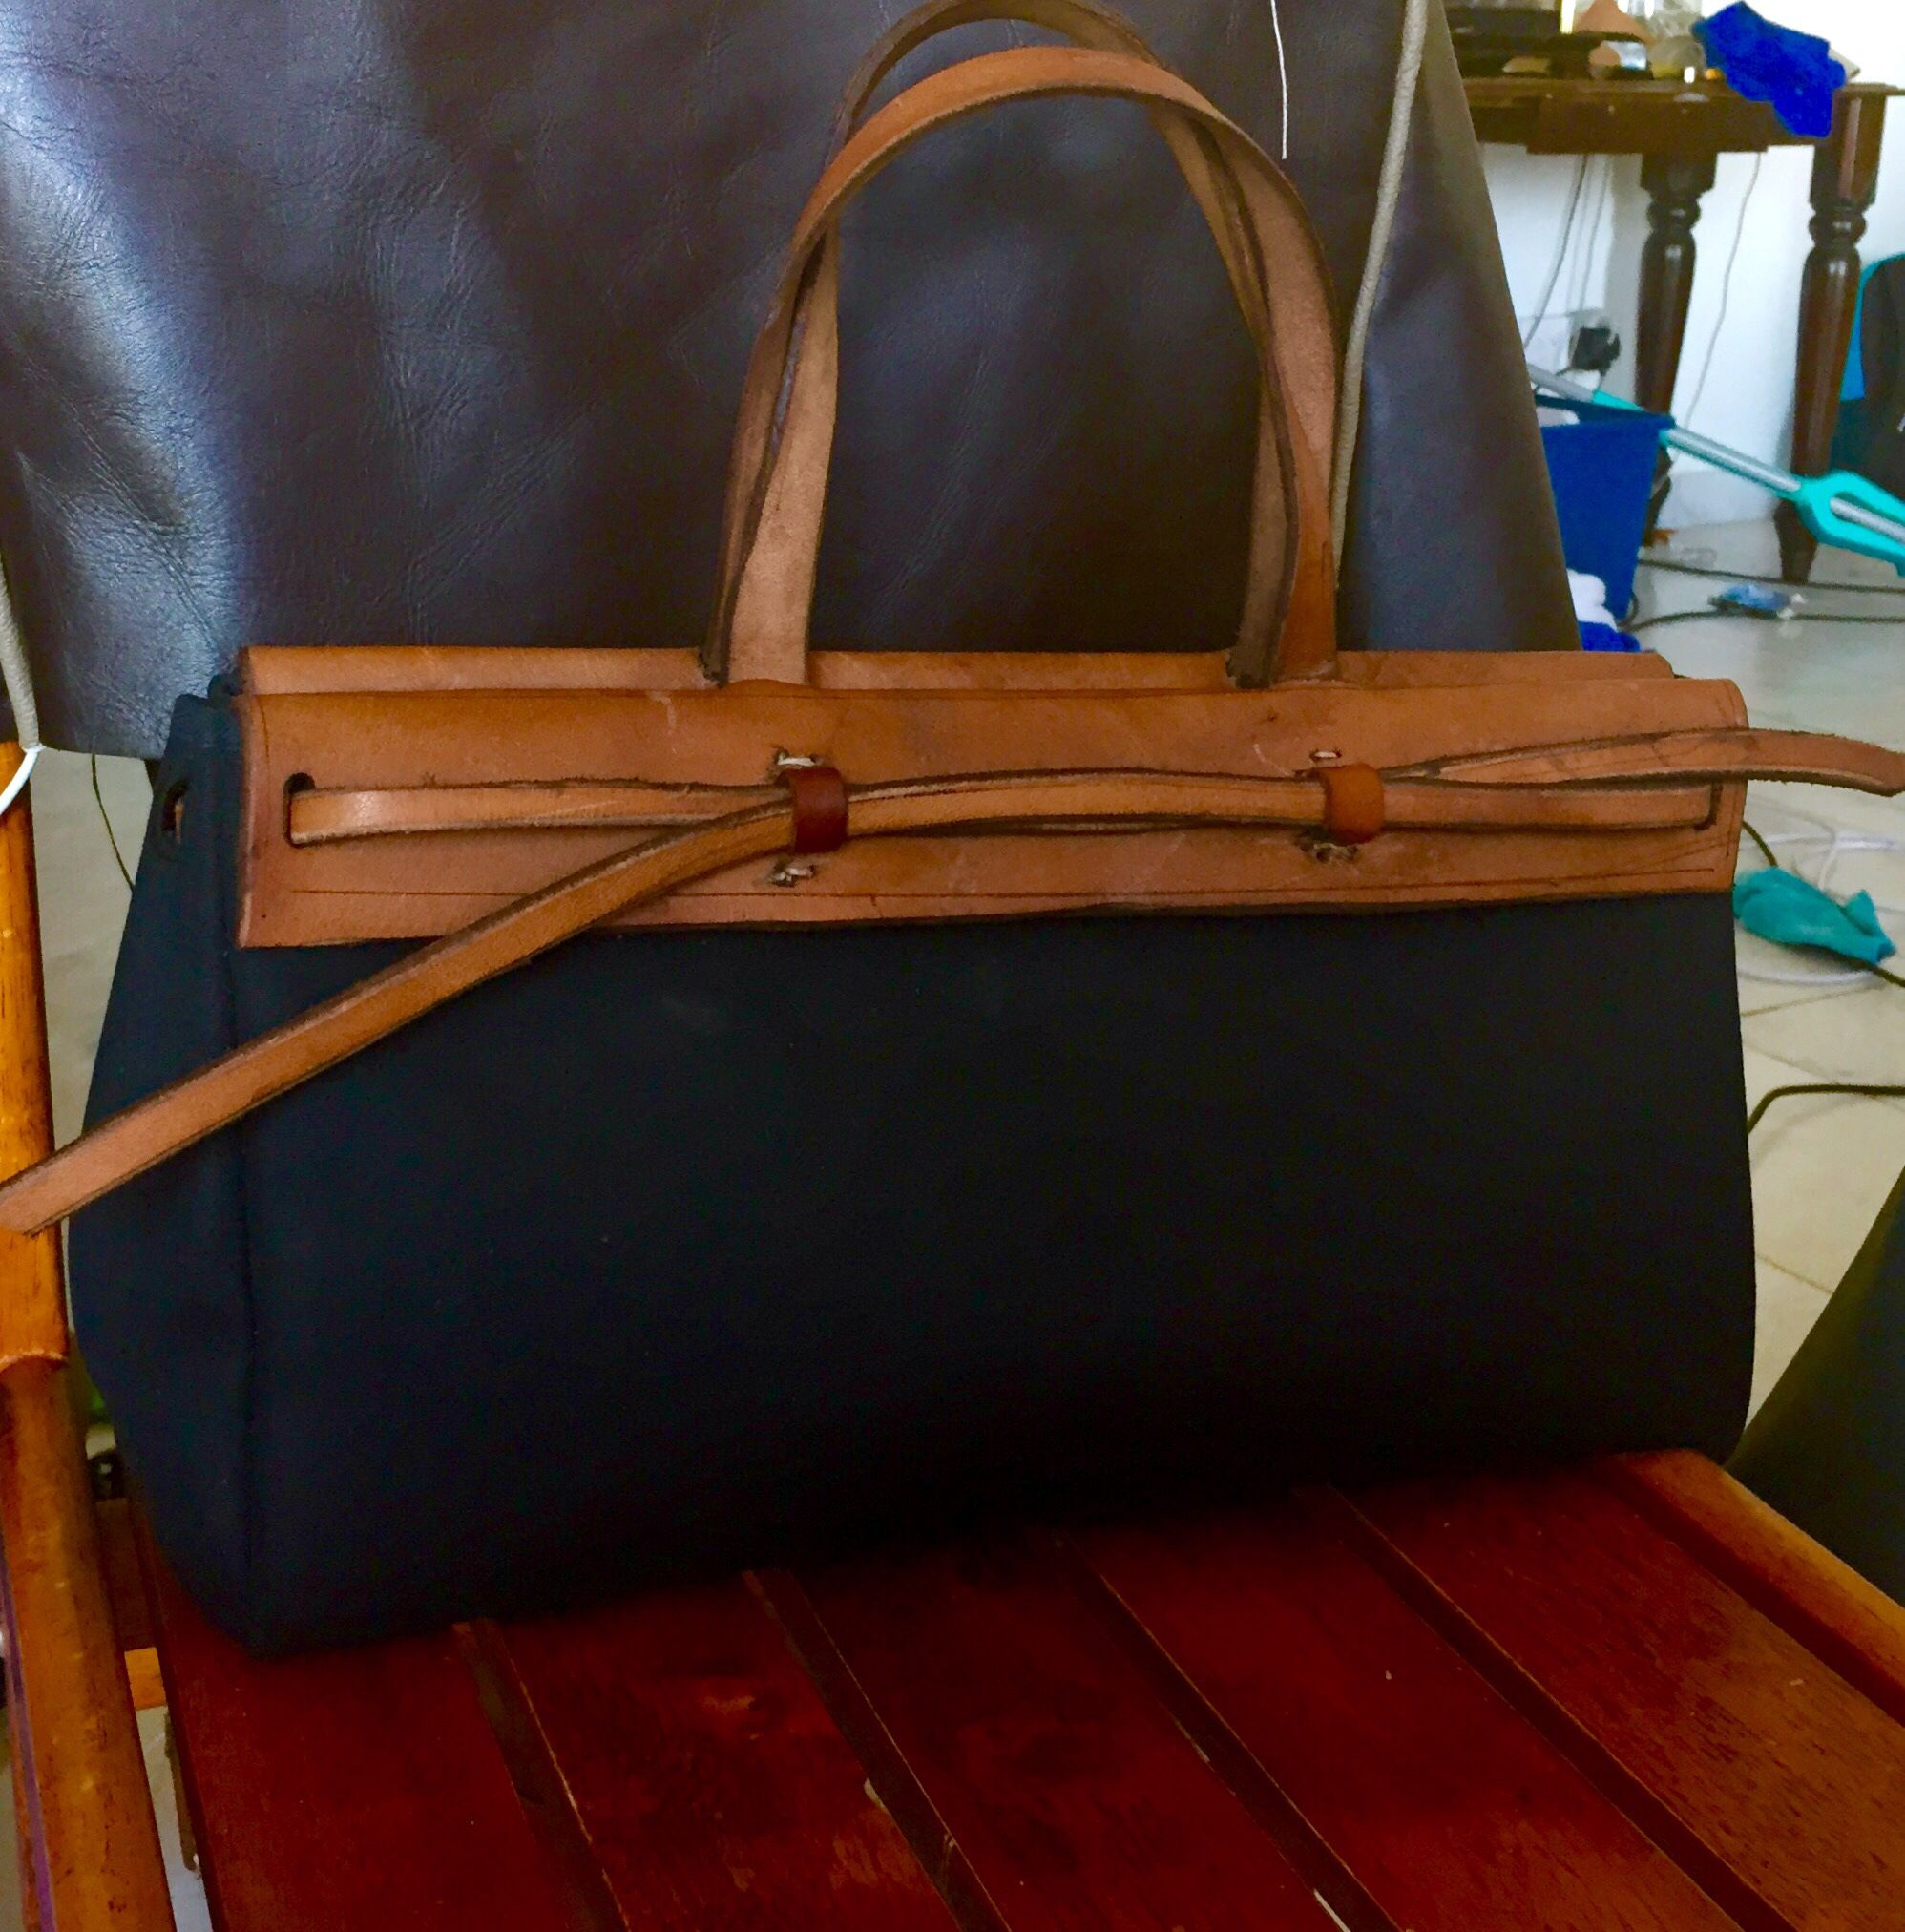 Black canvas and veggie tan leather tote